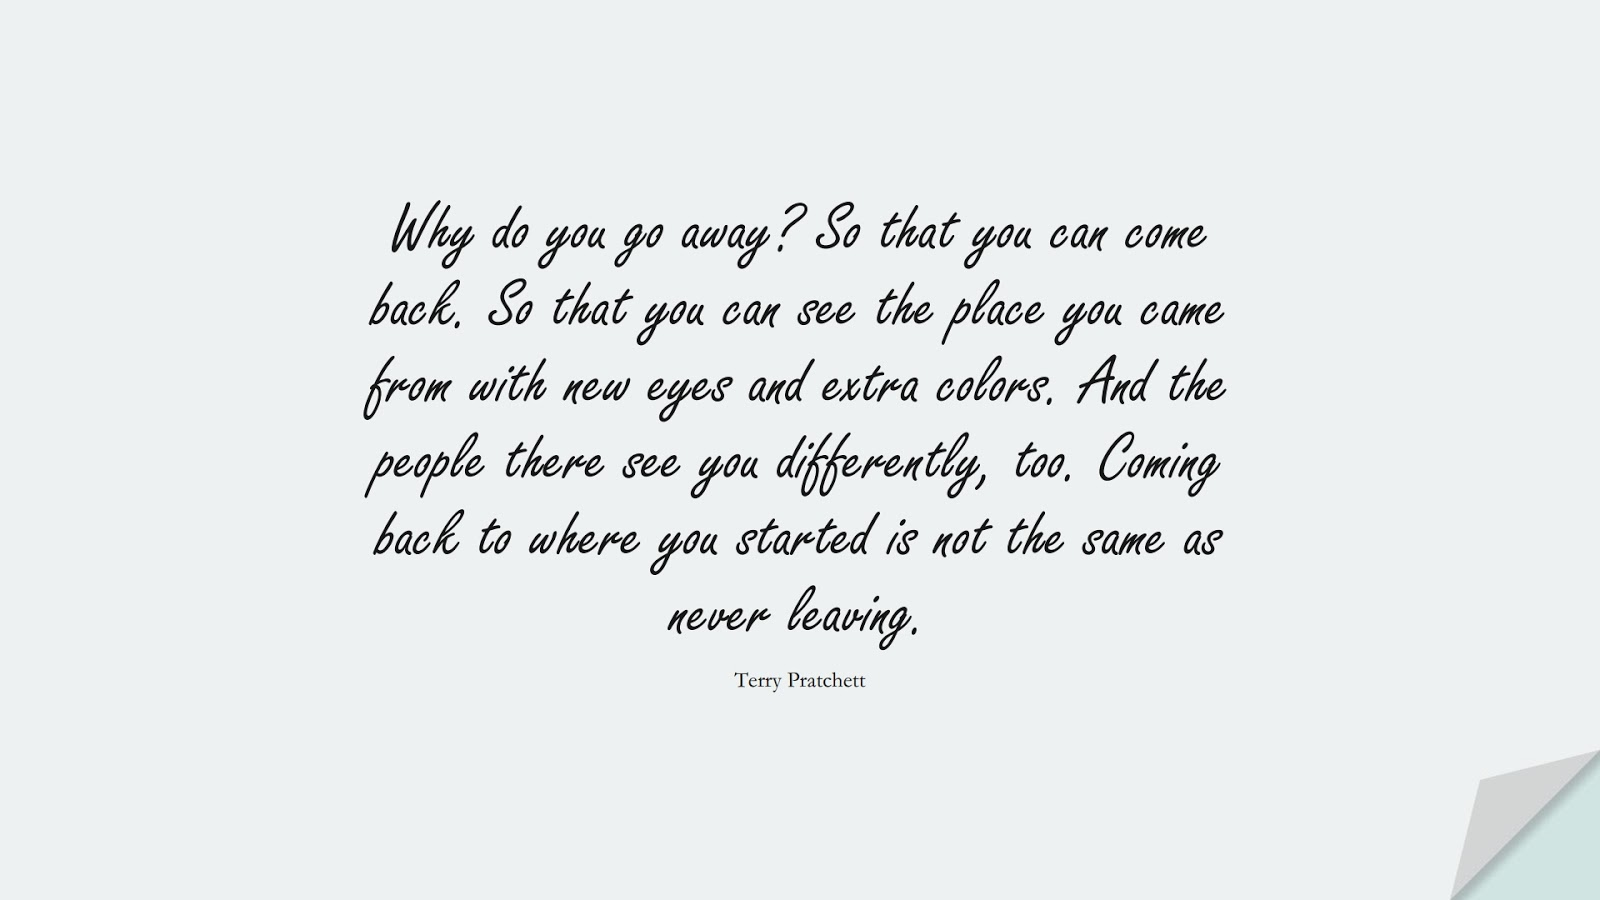 Why do you go away? So that you can come back. So that you can see the place you came from with new eyes and extra colors. And the people there see you differently, too. Coming back to where you started is not the same as never leaving. (Terry Pratchett);  #ChangeQuotes